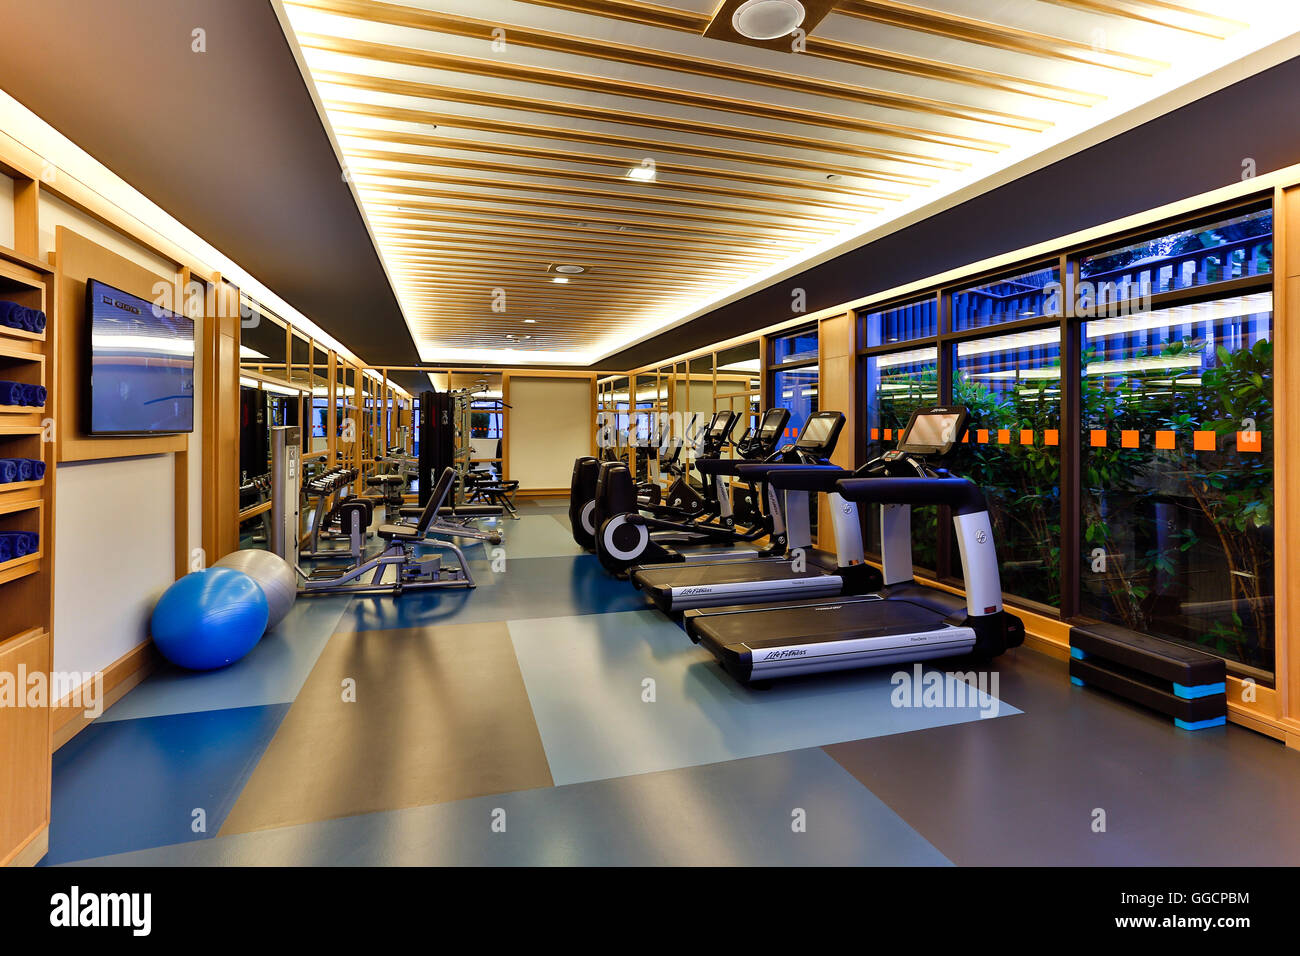 Health club fitness center located in the Amari Phuket on Patong Beach, Phuket, Thailand. - Stock Image